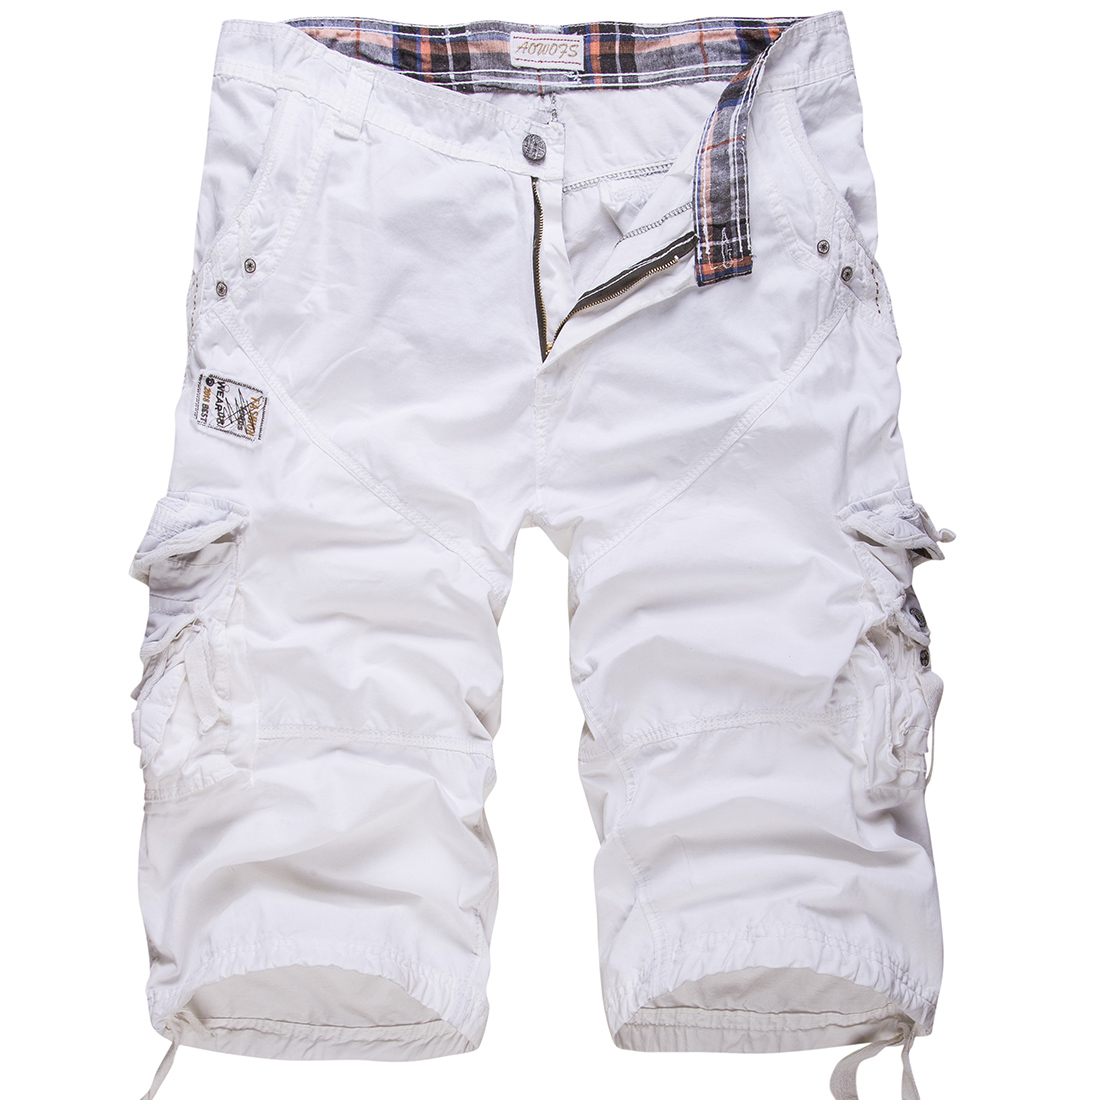 New loose large size cargo shorts cotton men's Tactical casual shorts solid color patchwork military shorts white knee length